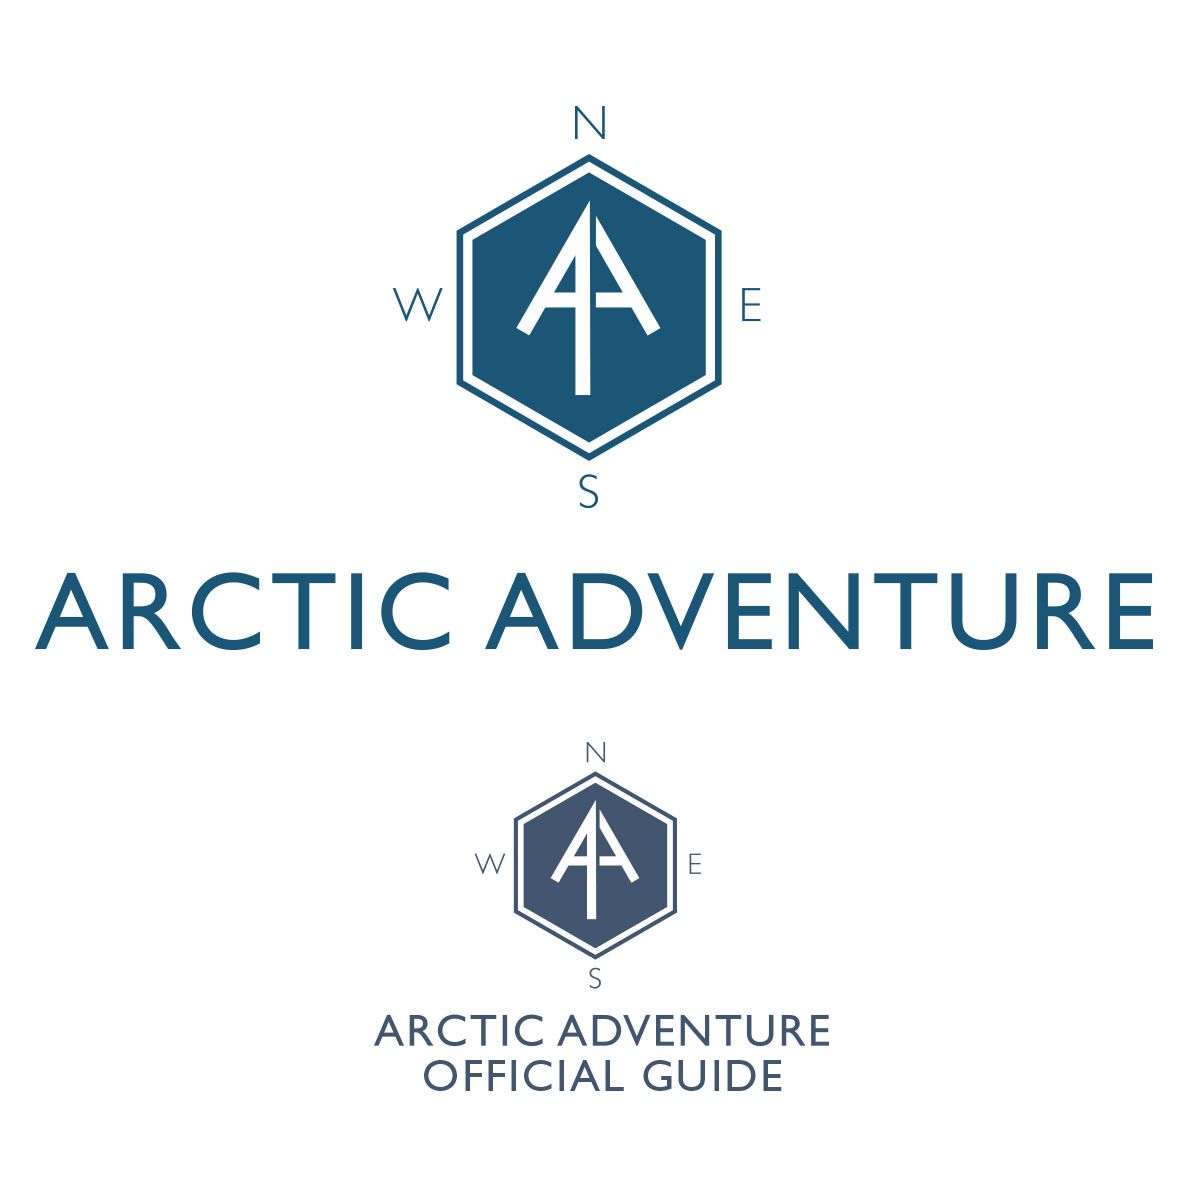 Arctic Adventure logo